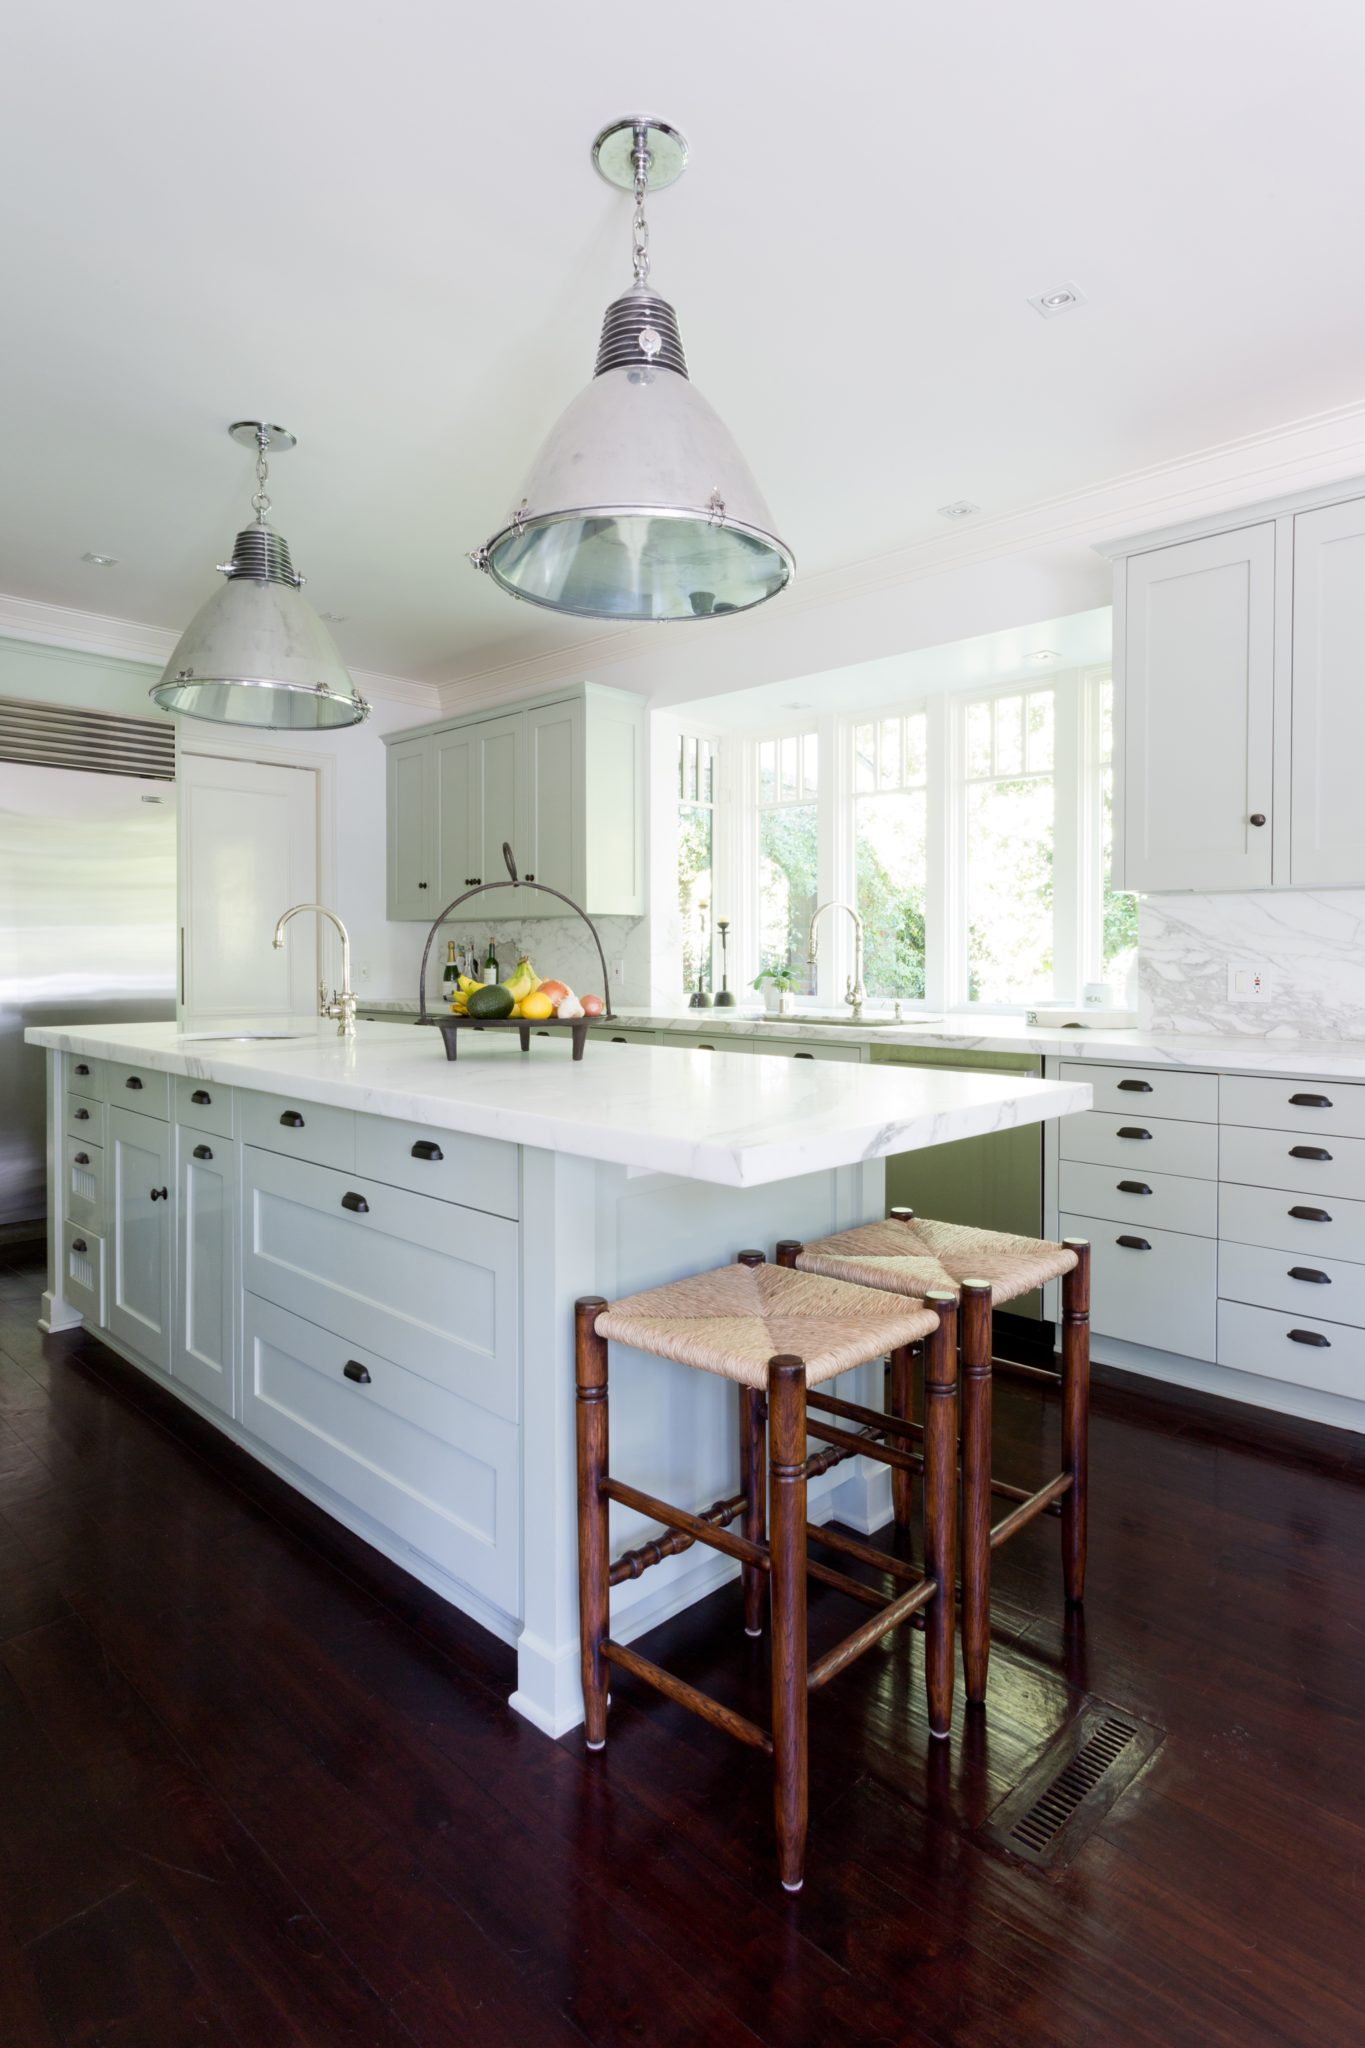 Kitchen Island with Hanging Fixtures by Paul Brant Williger, Architect Inc.